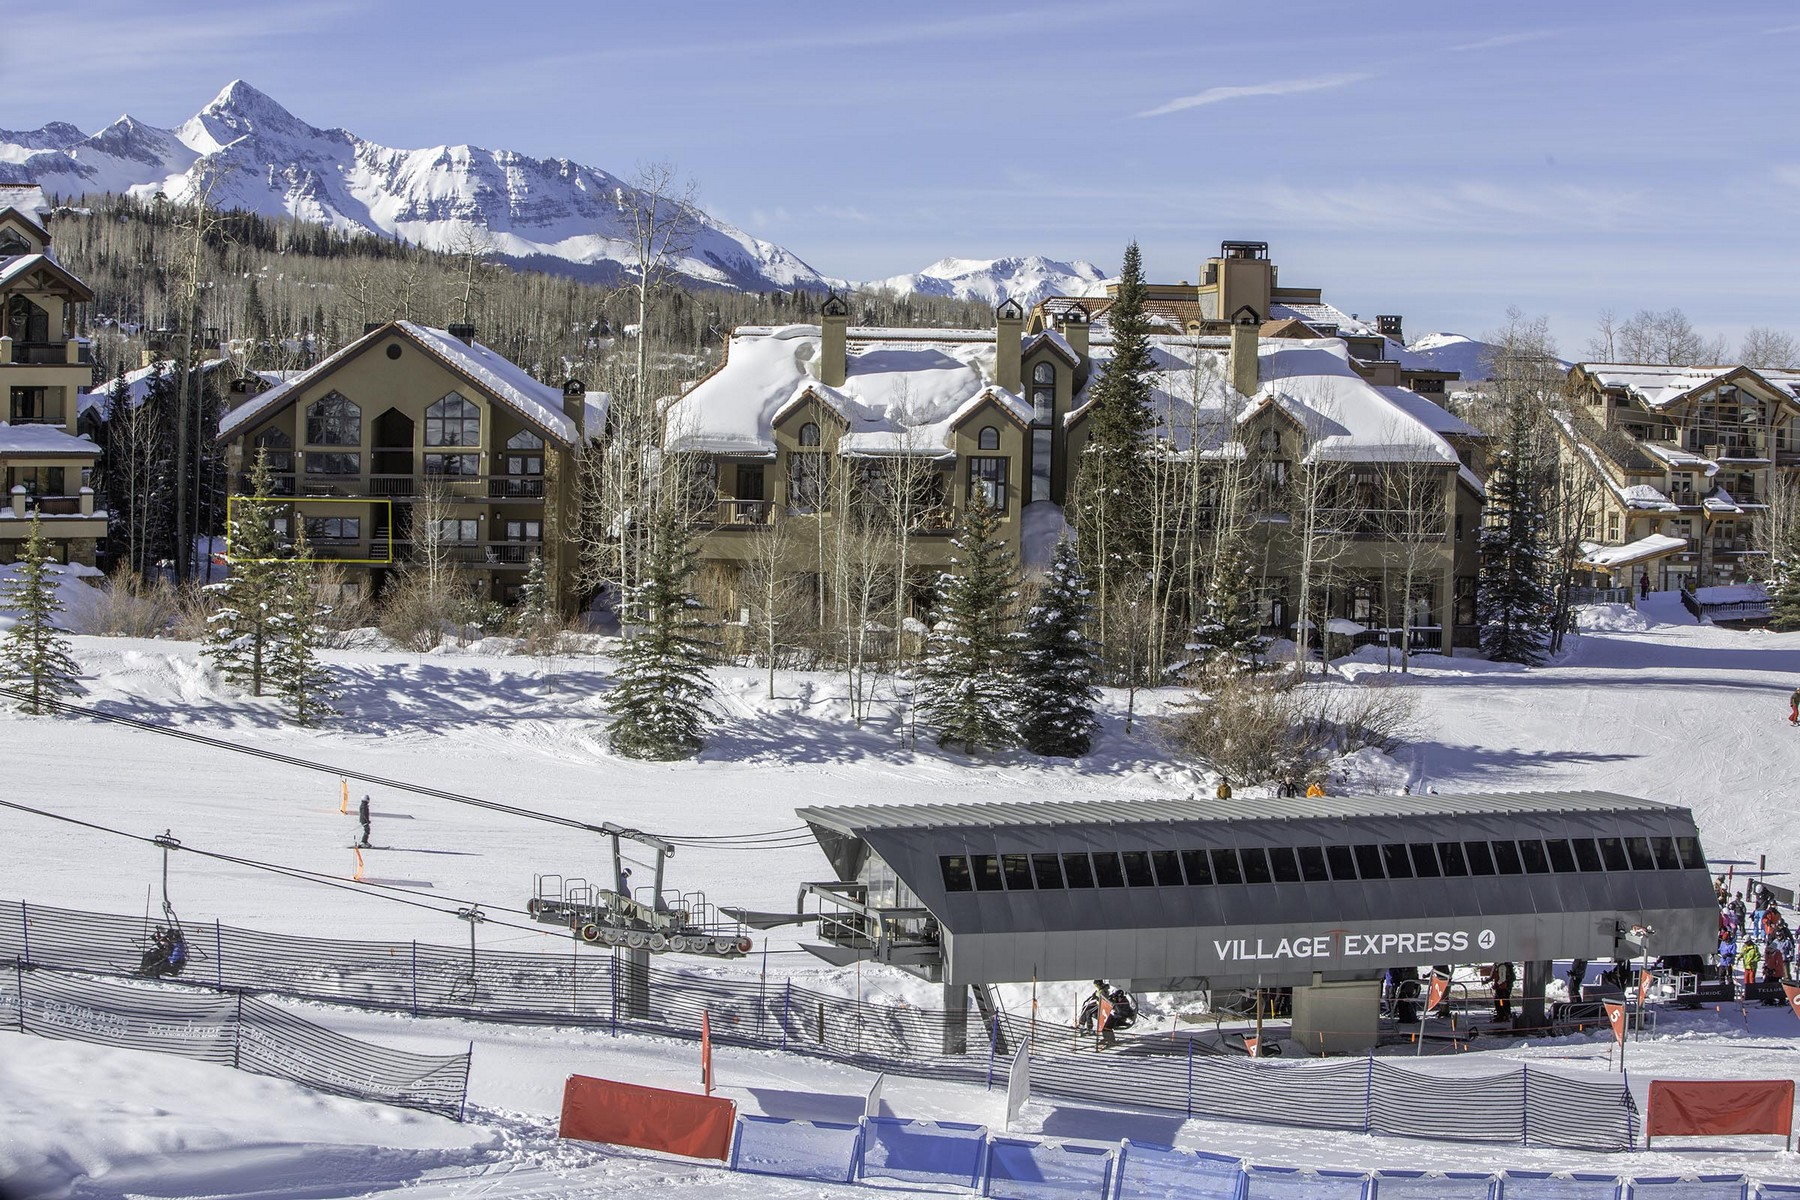 Condominium for Sale at Kayenta Phase II Unit 12 129 Lost Creek Lane, Unit 12 Telluride, Colorado, 81435 United States